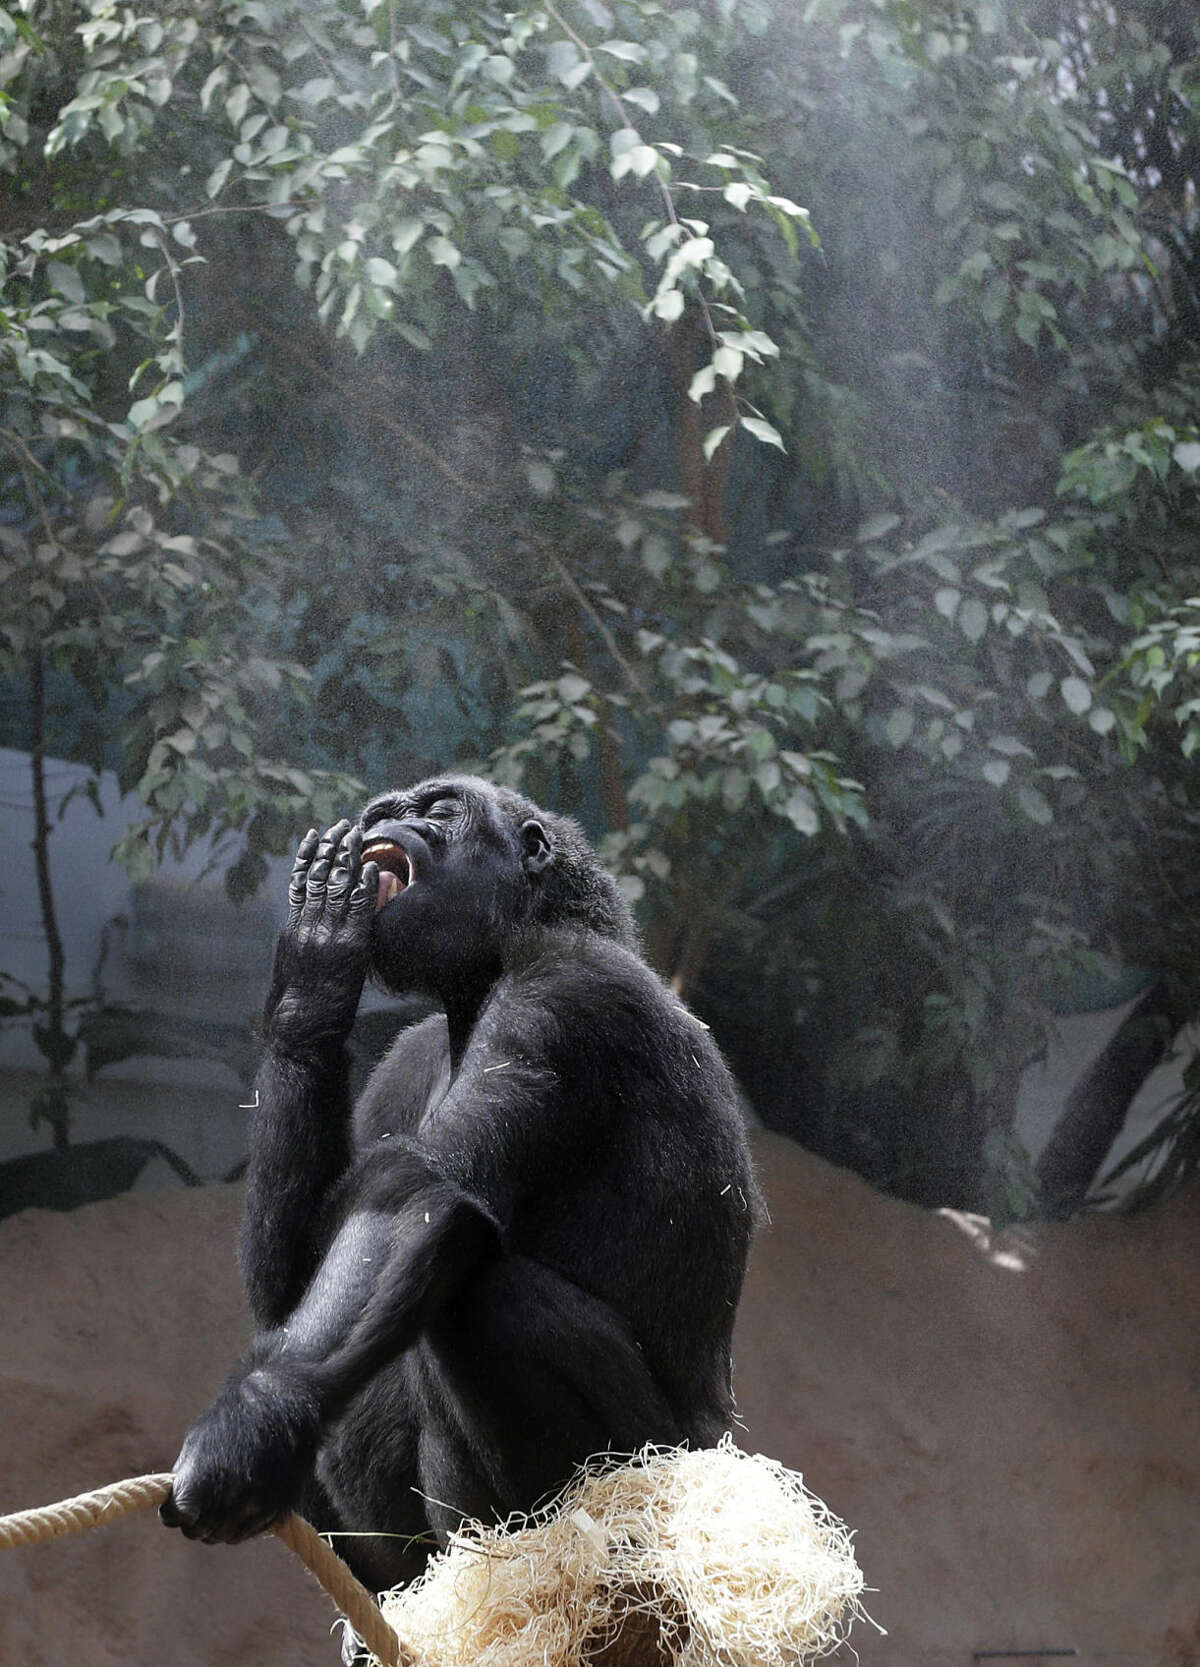 22 year-old gorilla Kijivu cools off under a refreshing mist shower as the temperature climbs to forecasted record highs at the zoo in Prague, Czech Republic, Friday, Aug. 7, 2015. (AP Photo/Petr David Josek)